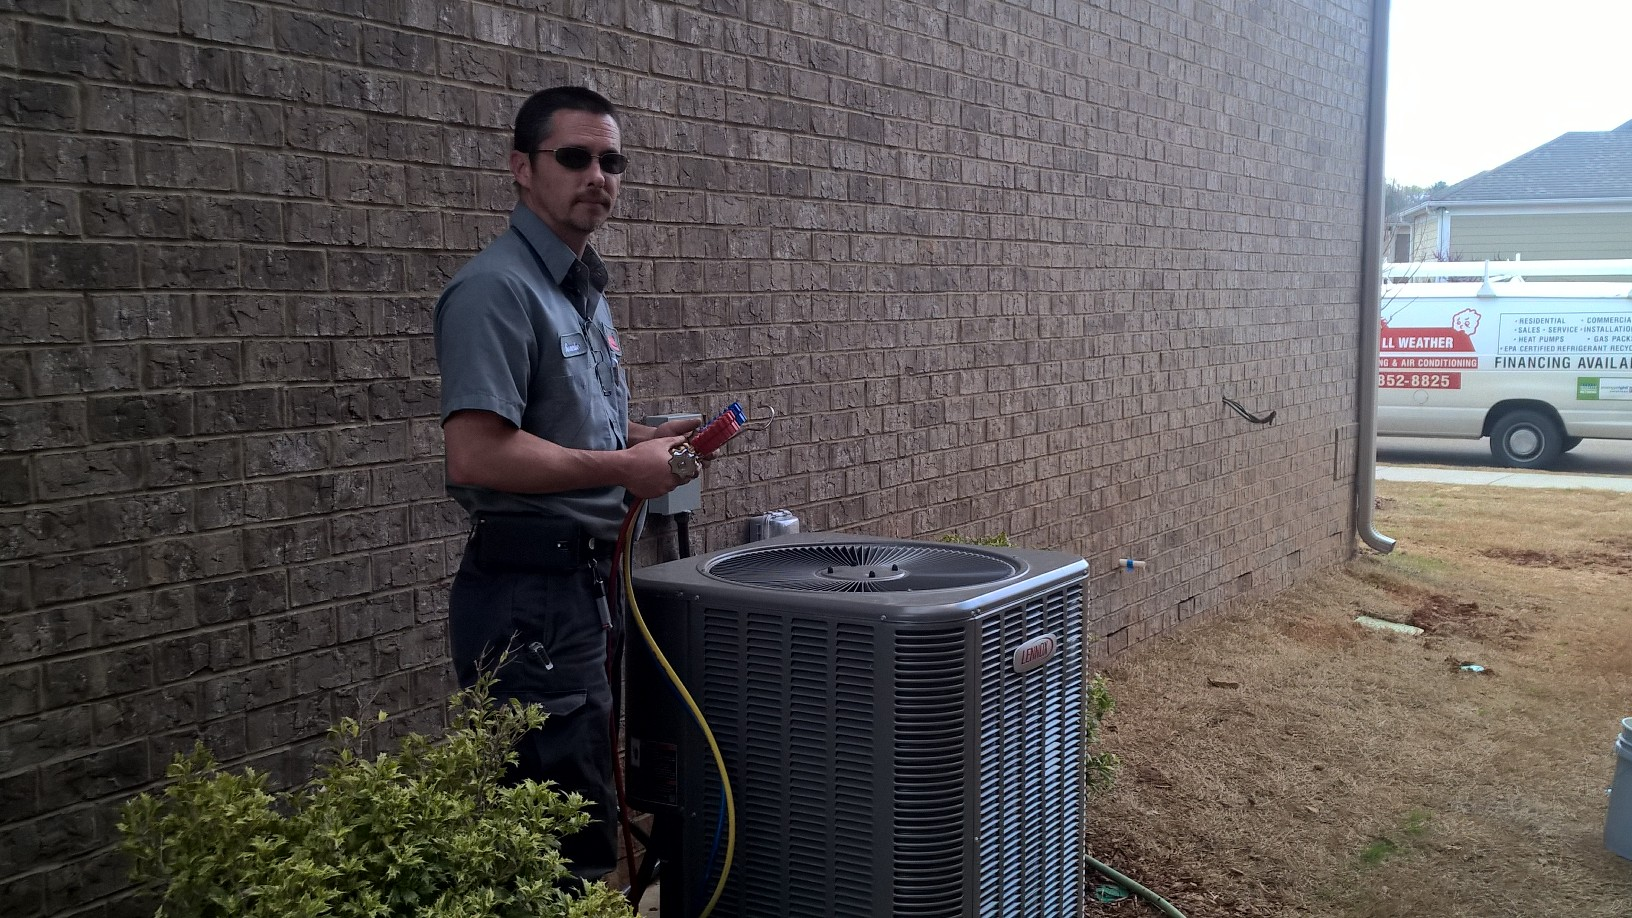 Ronnie Austin is setting and starting up a Lennox heat pump